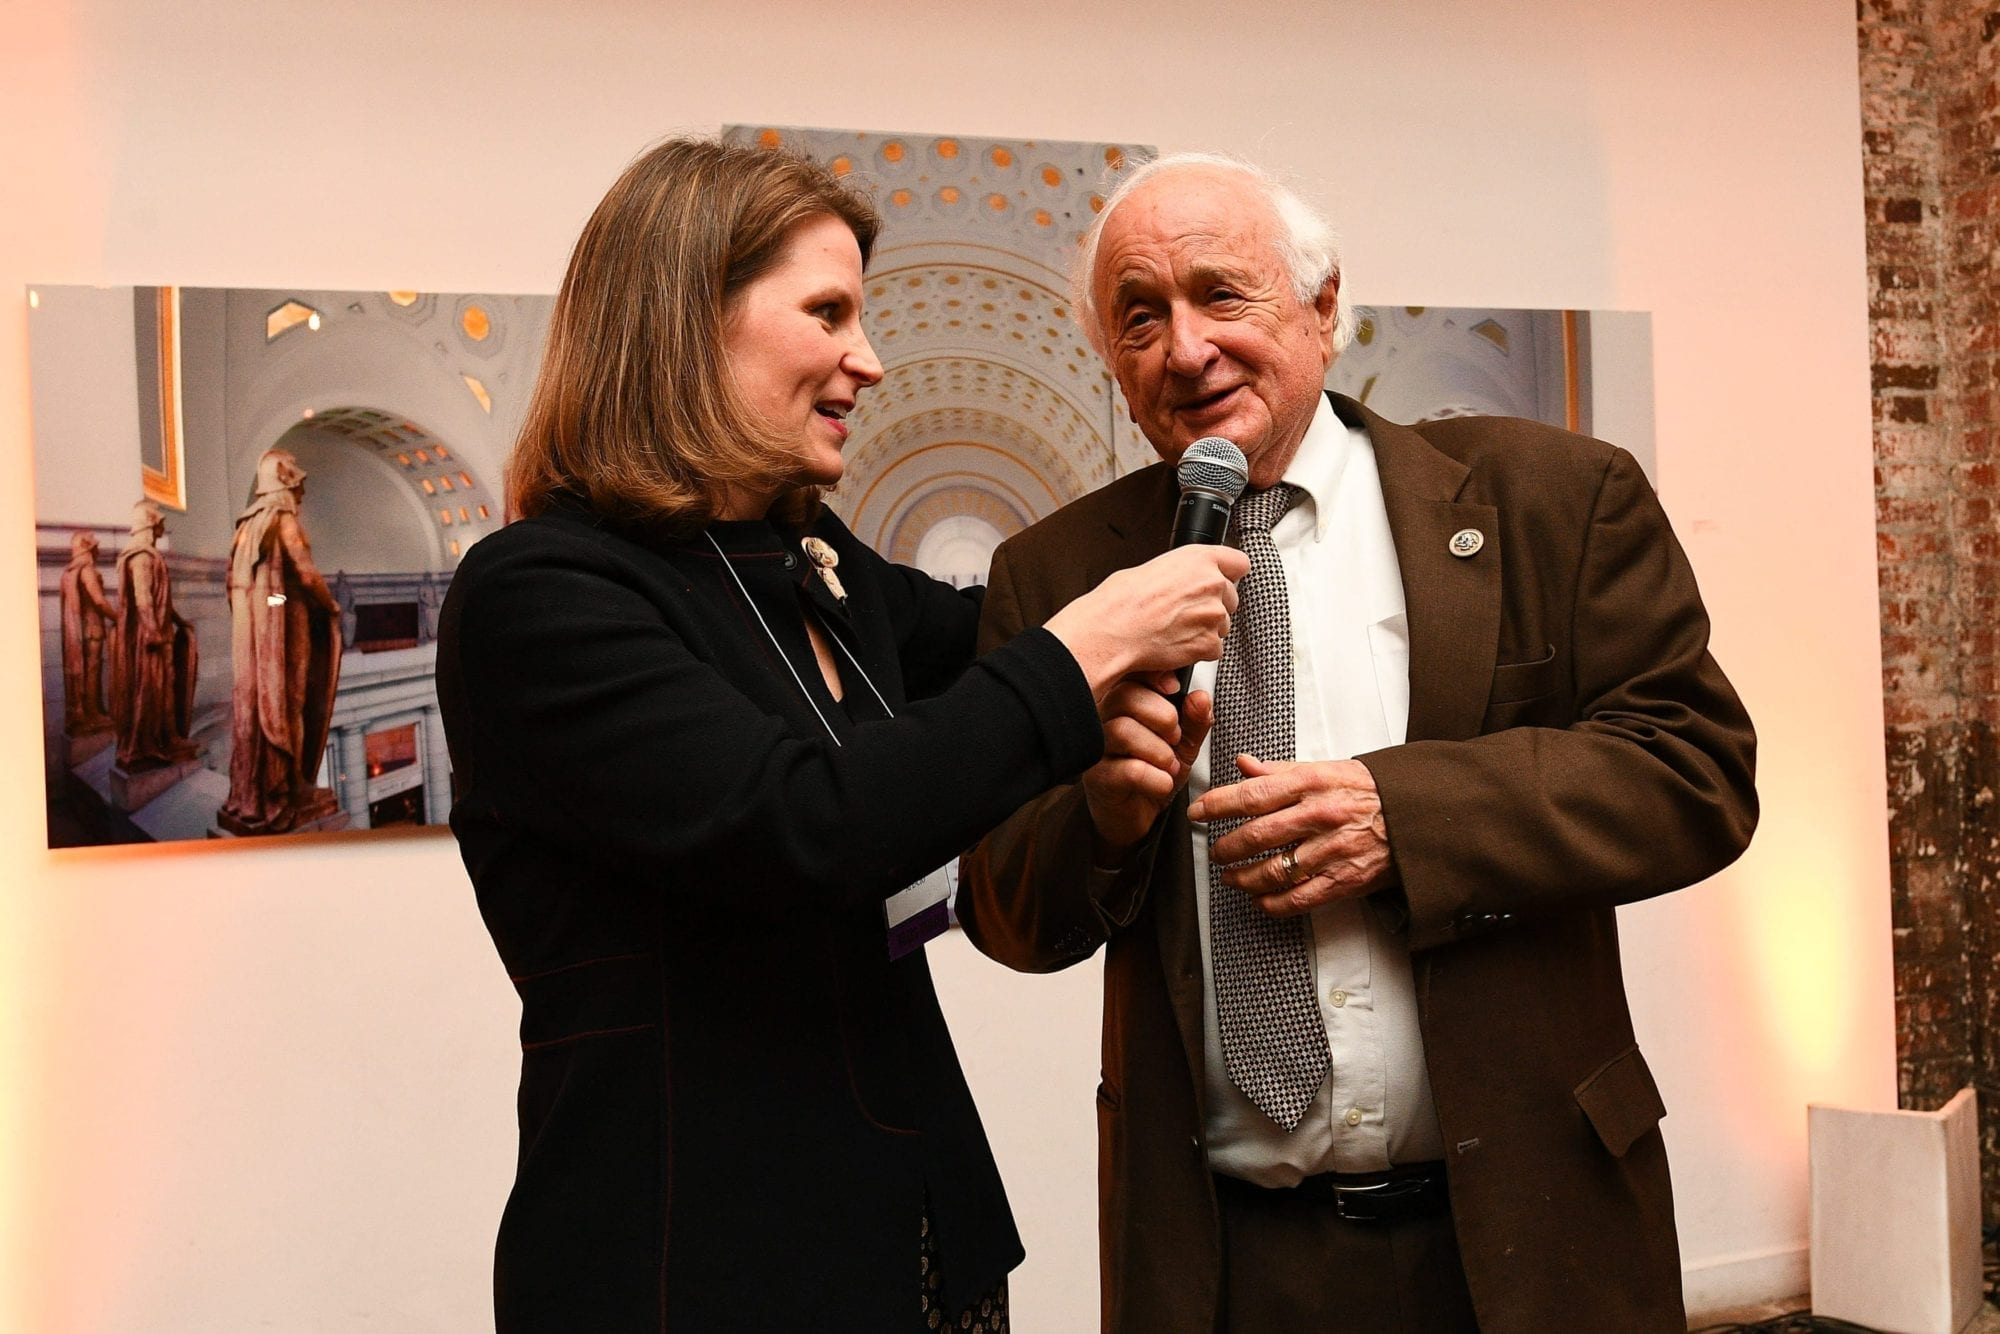 AFL-CIO, Liz Shuler, Sander Levin, Solidarity Center, human rights